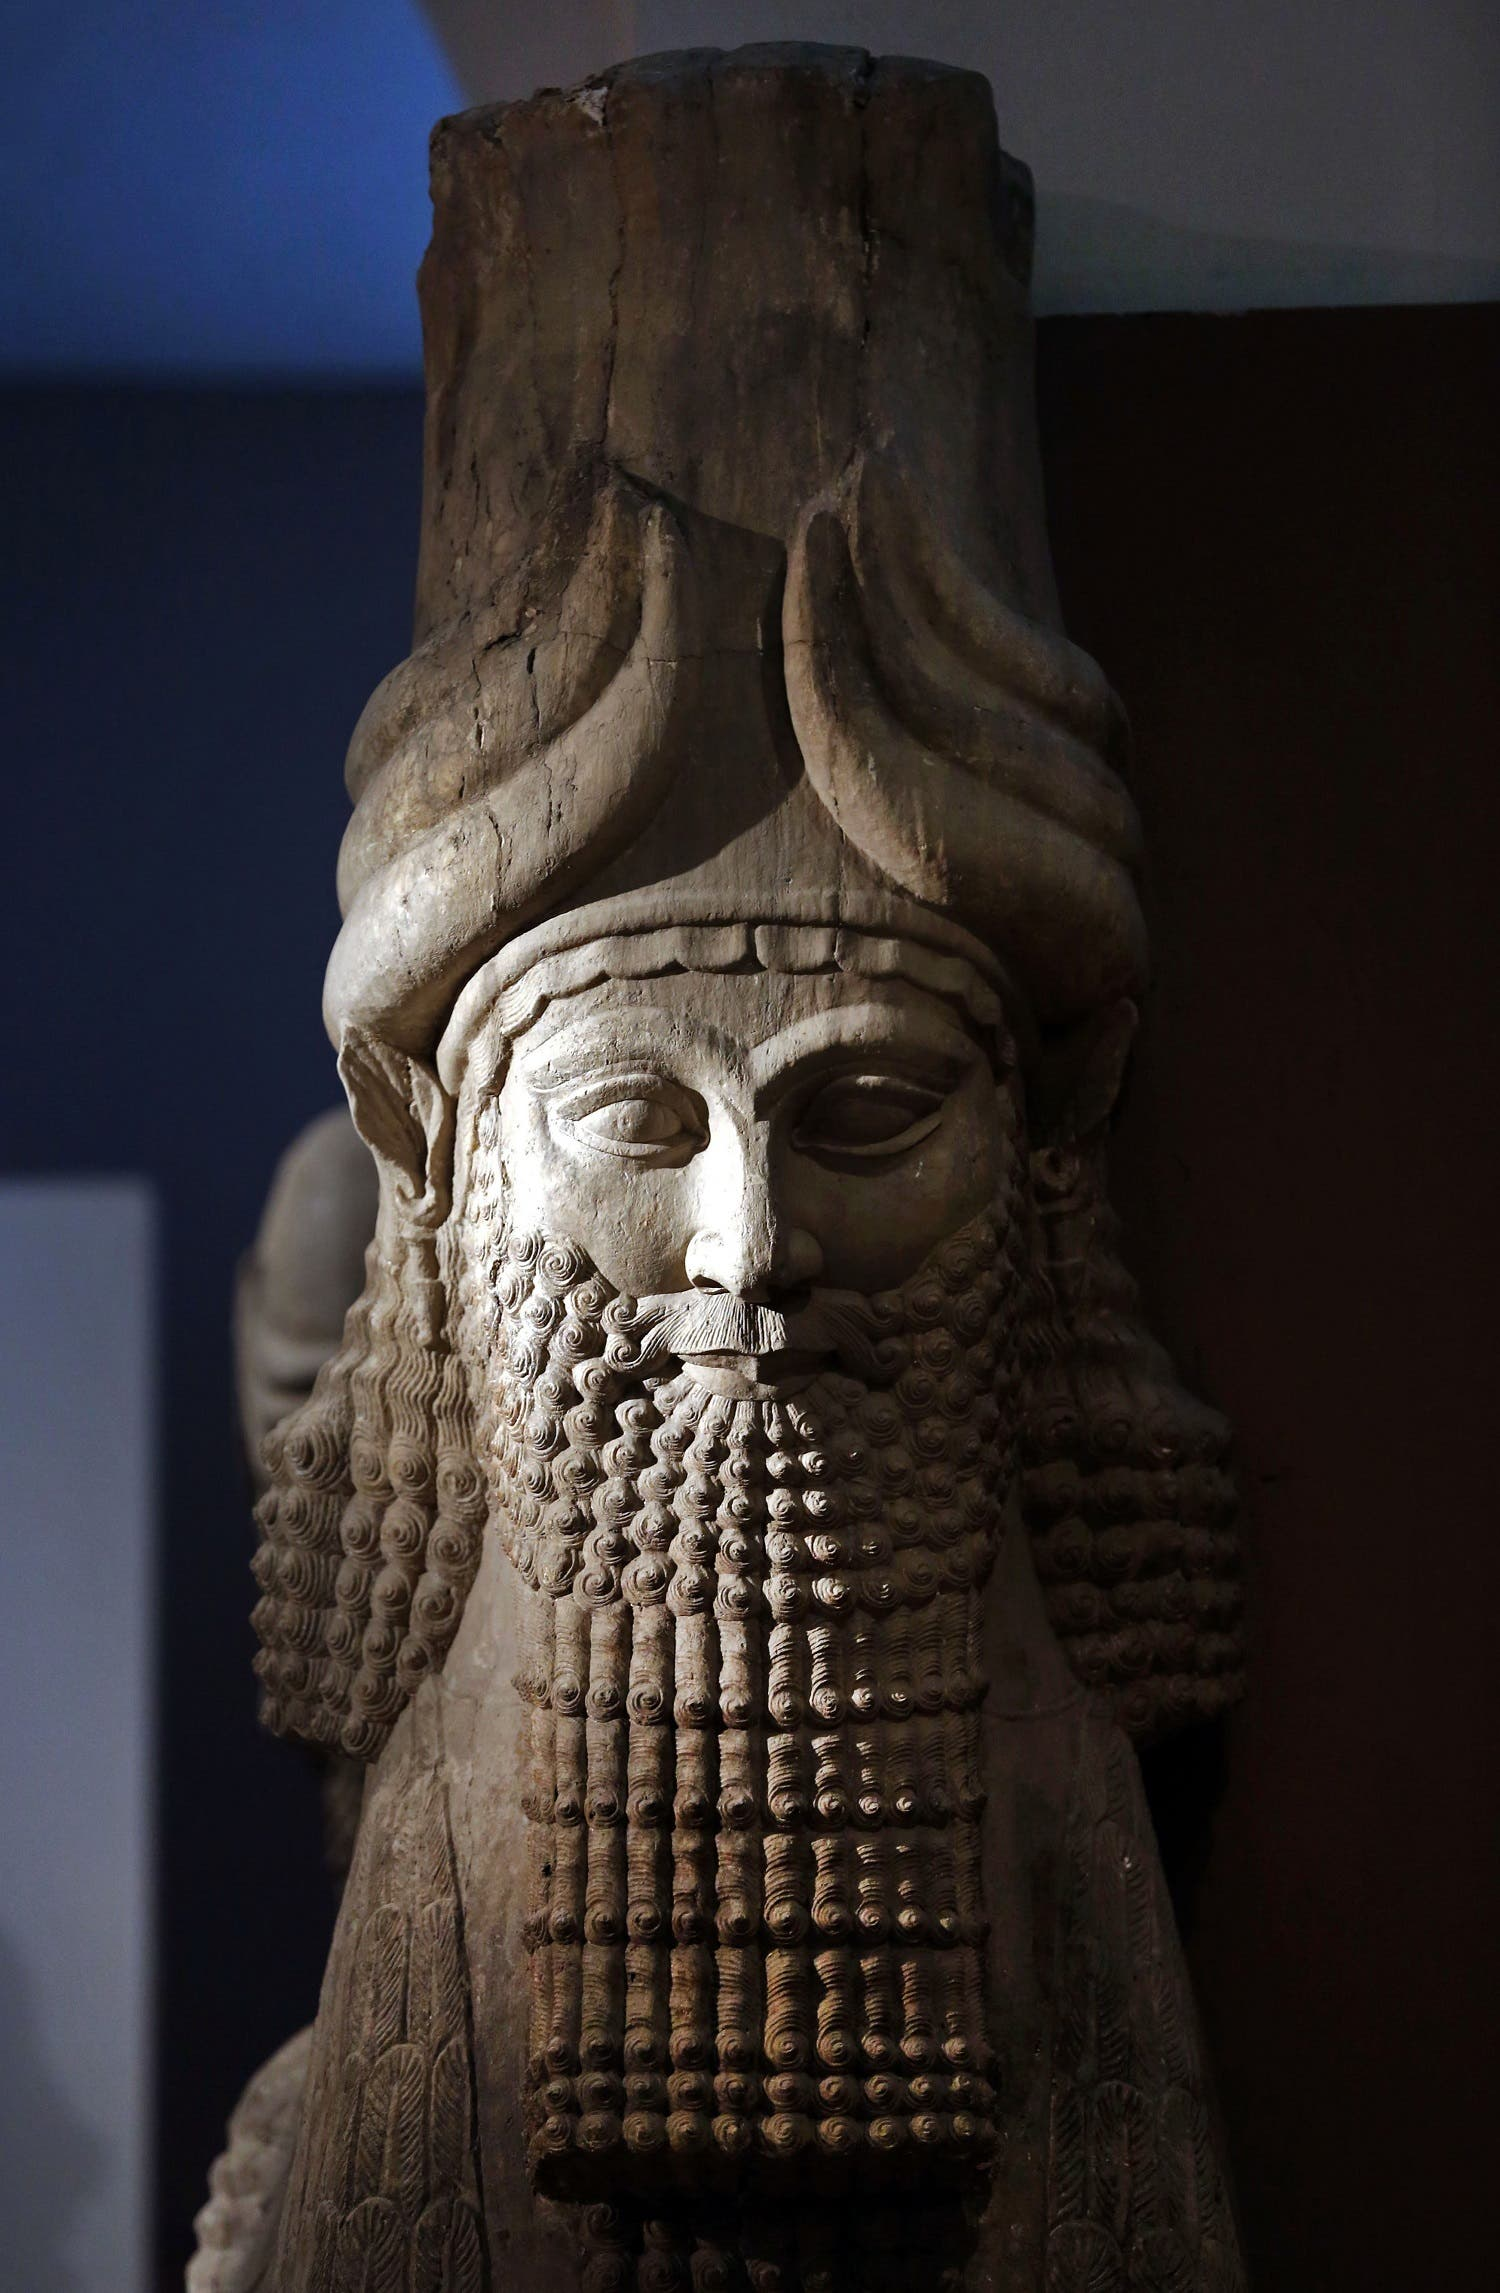 his file photo taken on Monday, Sept. 15, 2014, shows a detail of a statue of Lamassu, the great winged bull from the Assyrian period displayed at the Iraq National Museum in Baghdad. (AP)